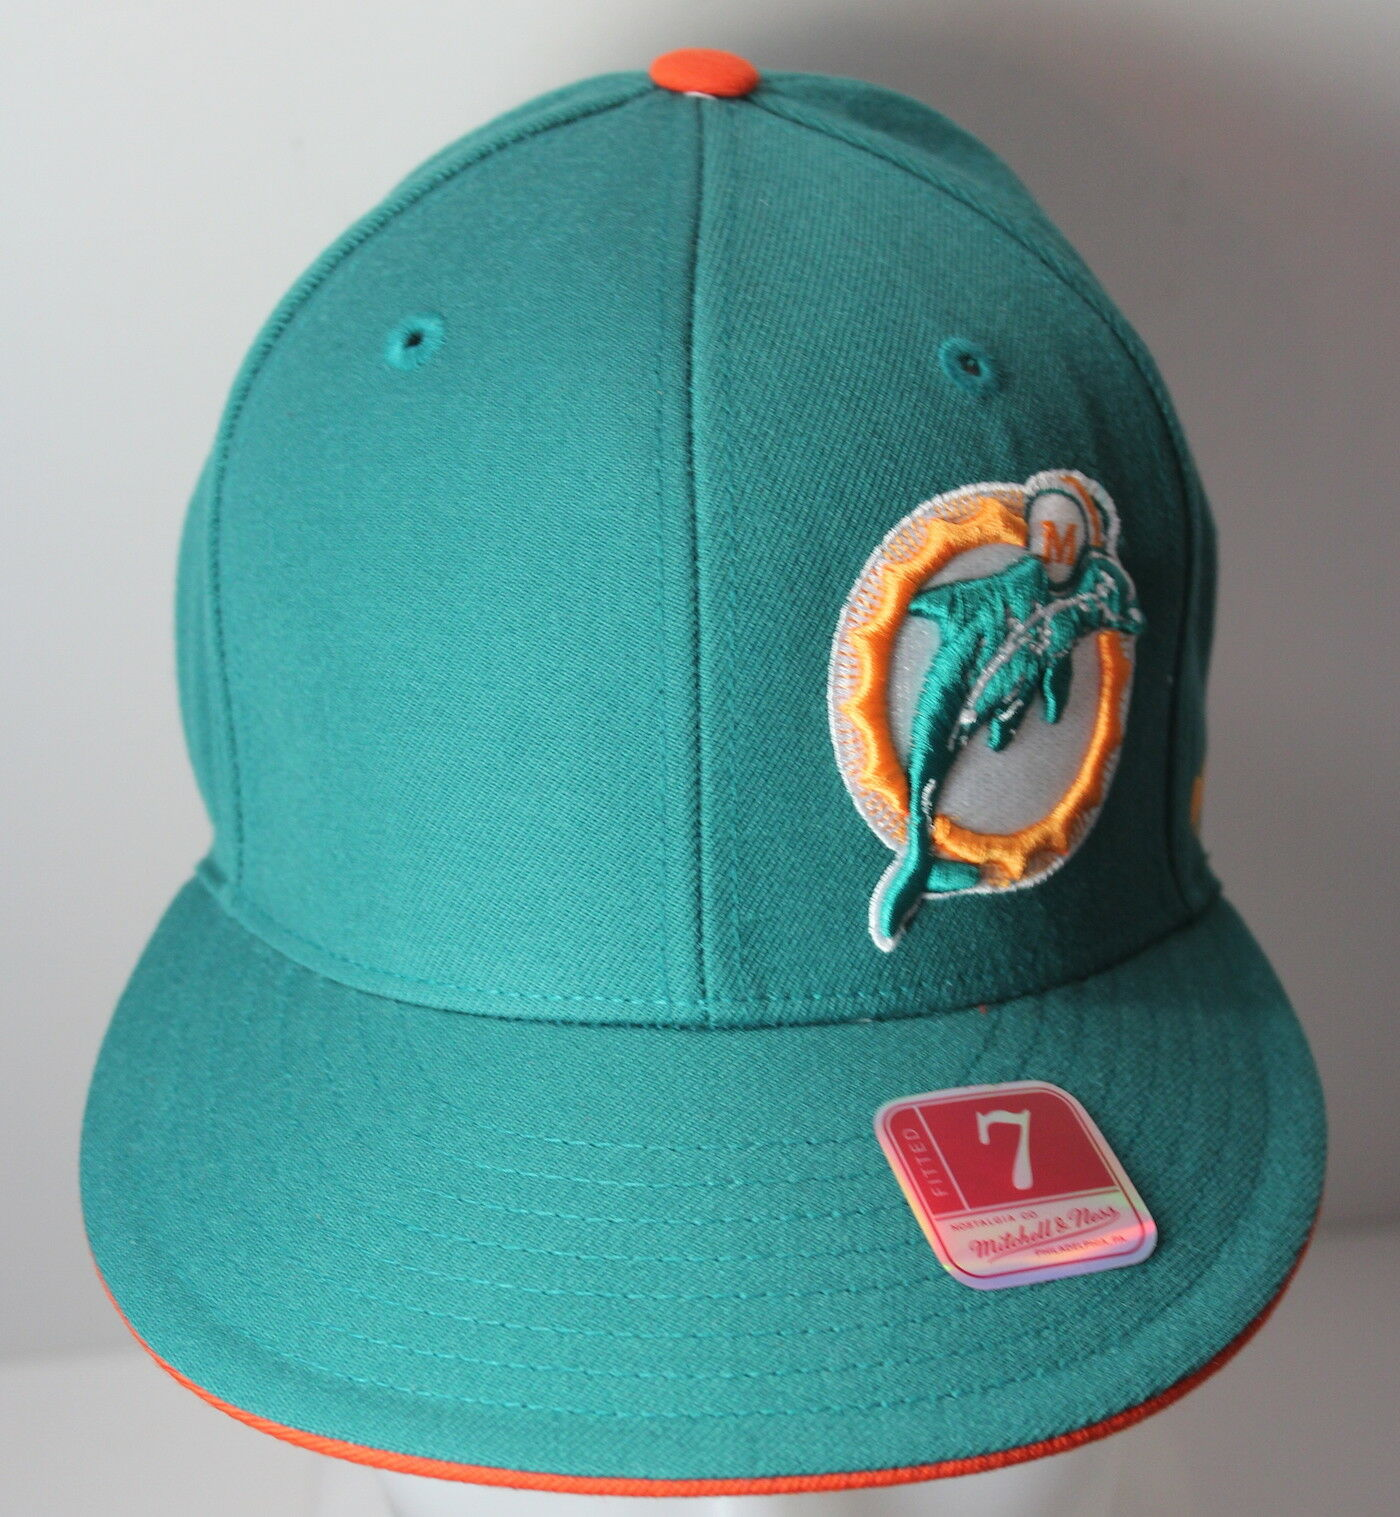 Miami Dolphins NFL Mitchell & Ness 7 NFL Dolphins Fitted Cap Hat NEW f6e55c